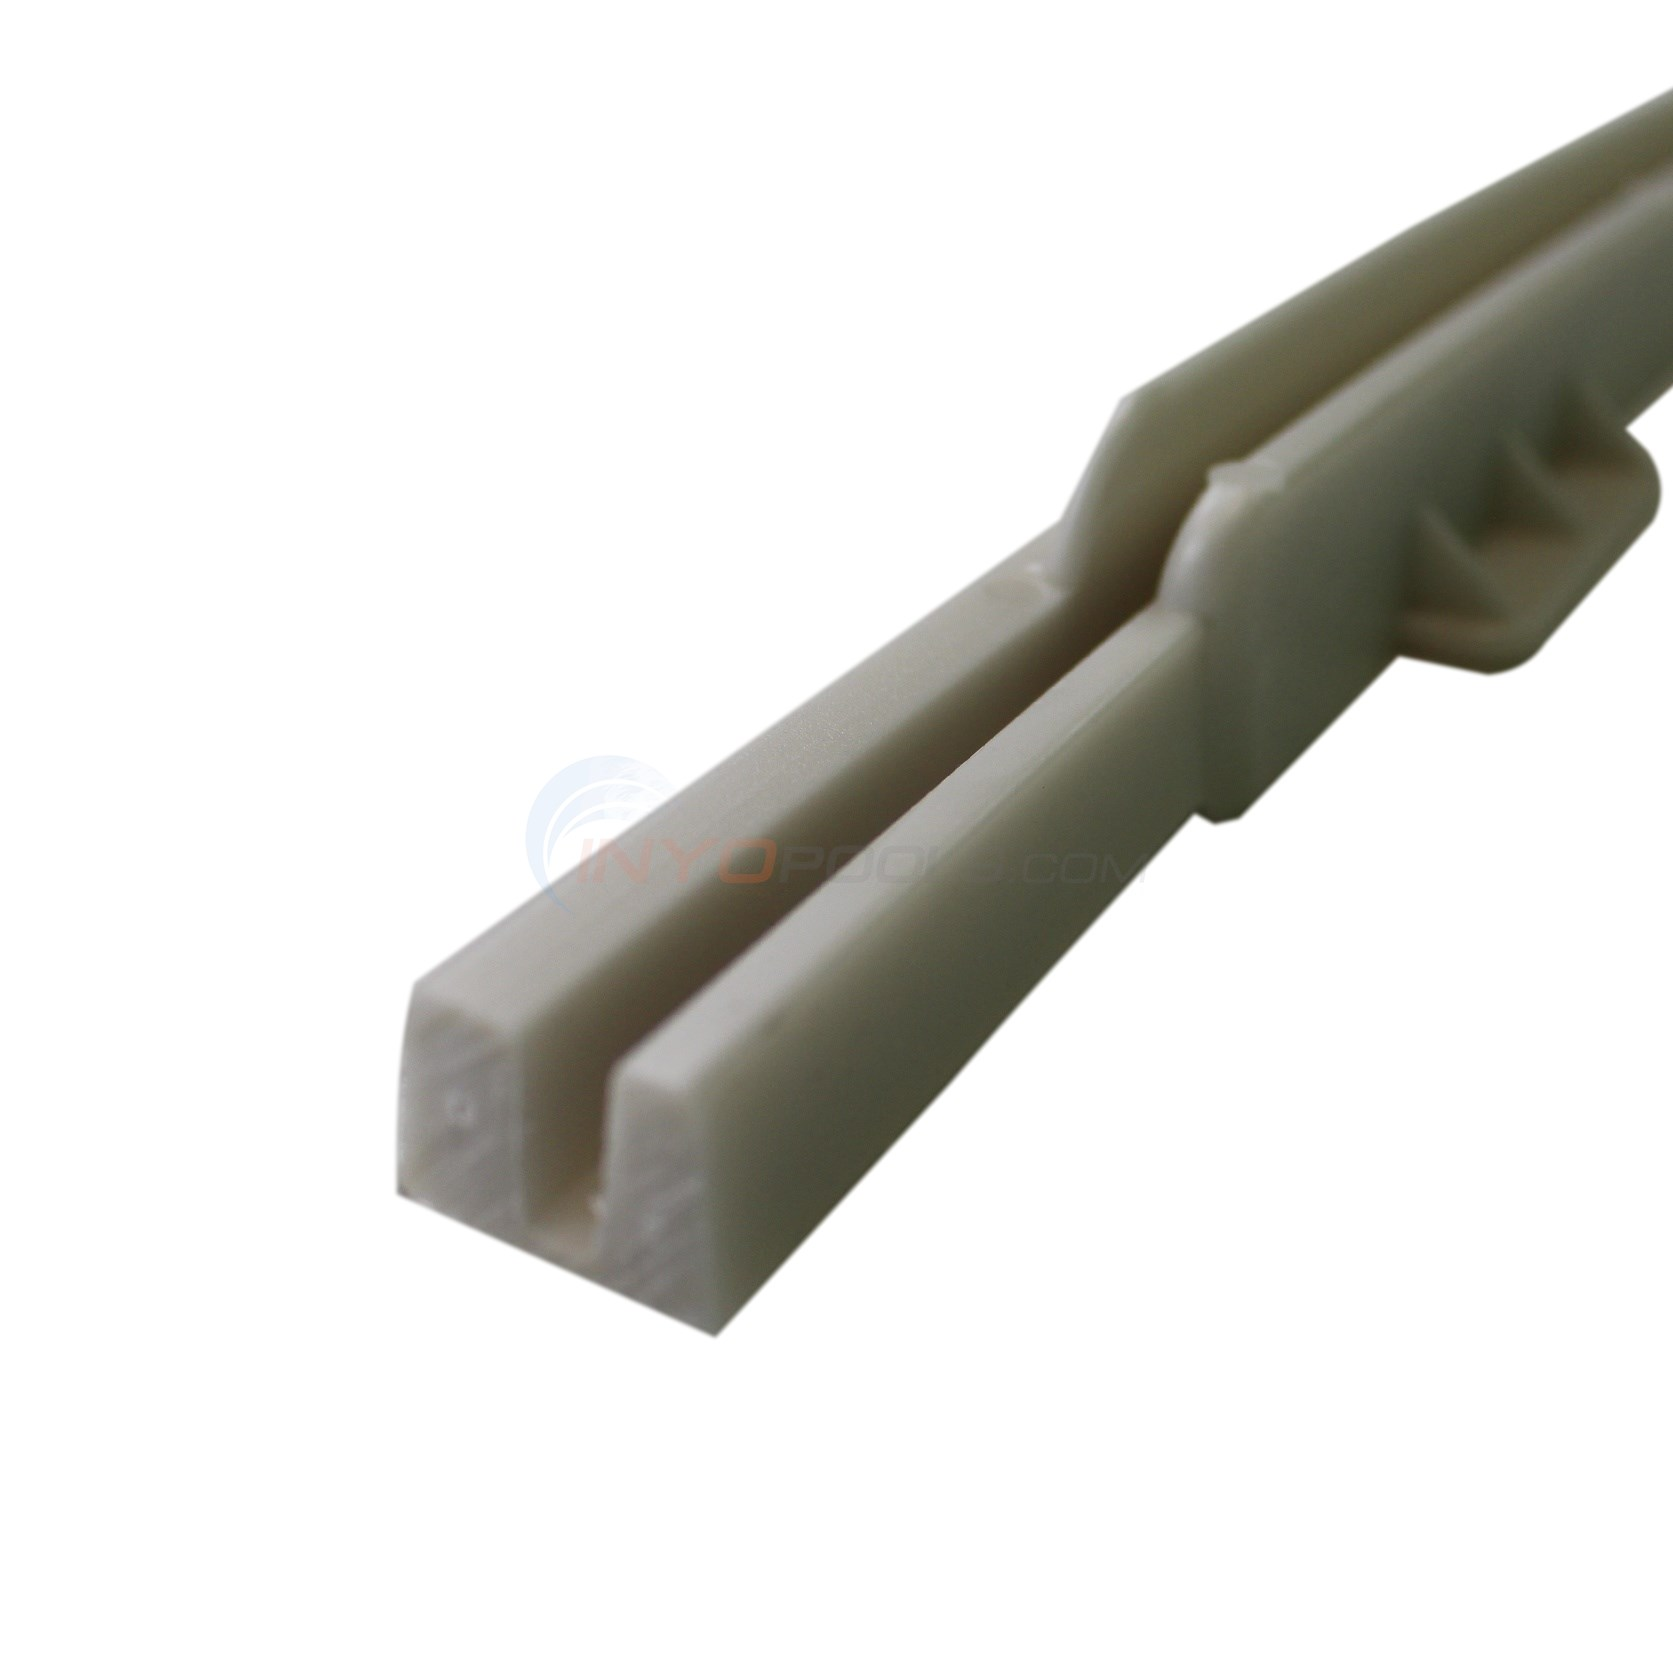 Wilbar 38740 Resin Bottom Rail Upgrade Kit for 24' Round Pool - 38740-24-RESKIT